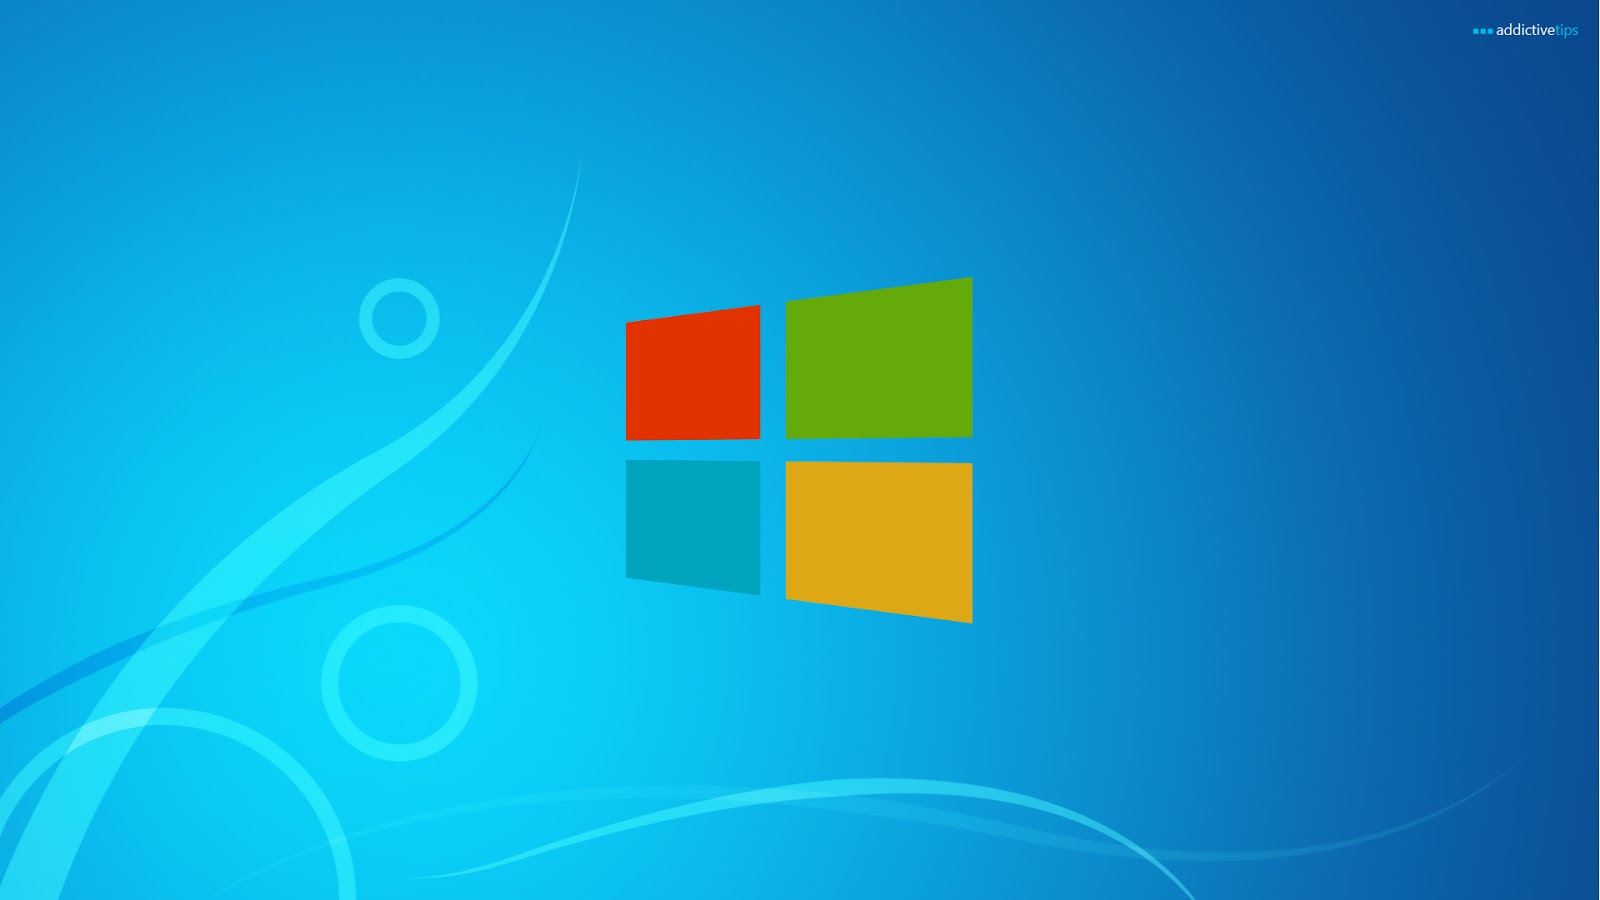 Windows 10 Wallpapers Pack 2016 No 1 Graphics4alll